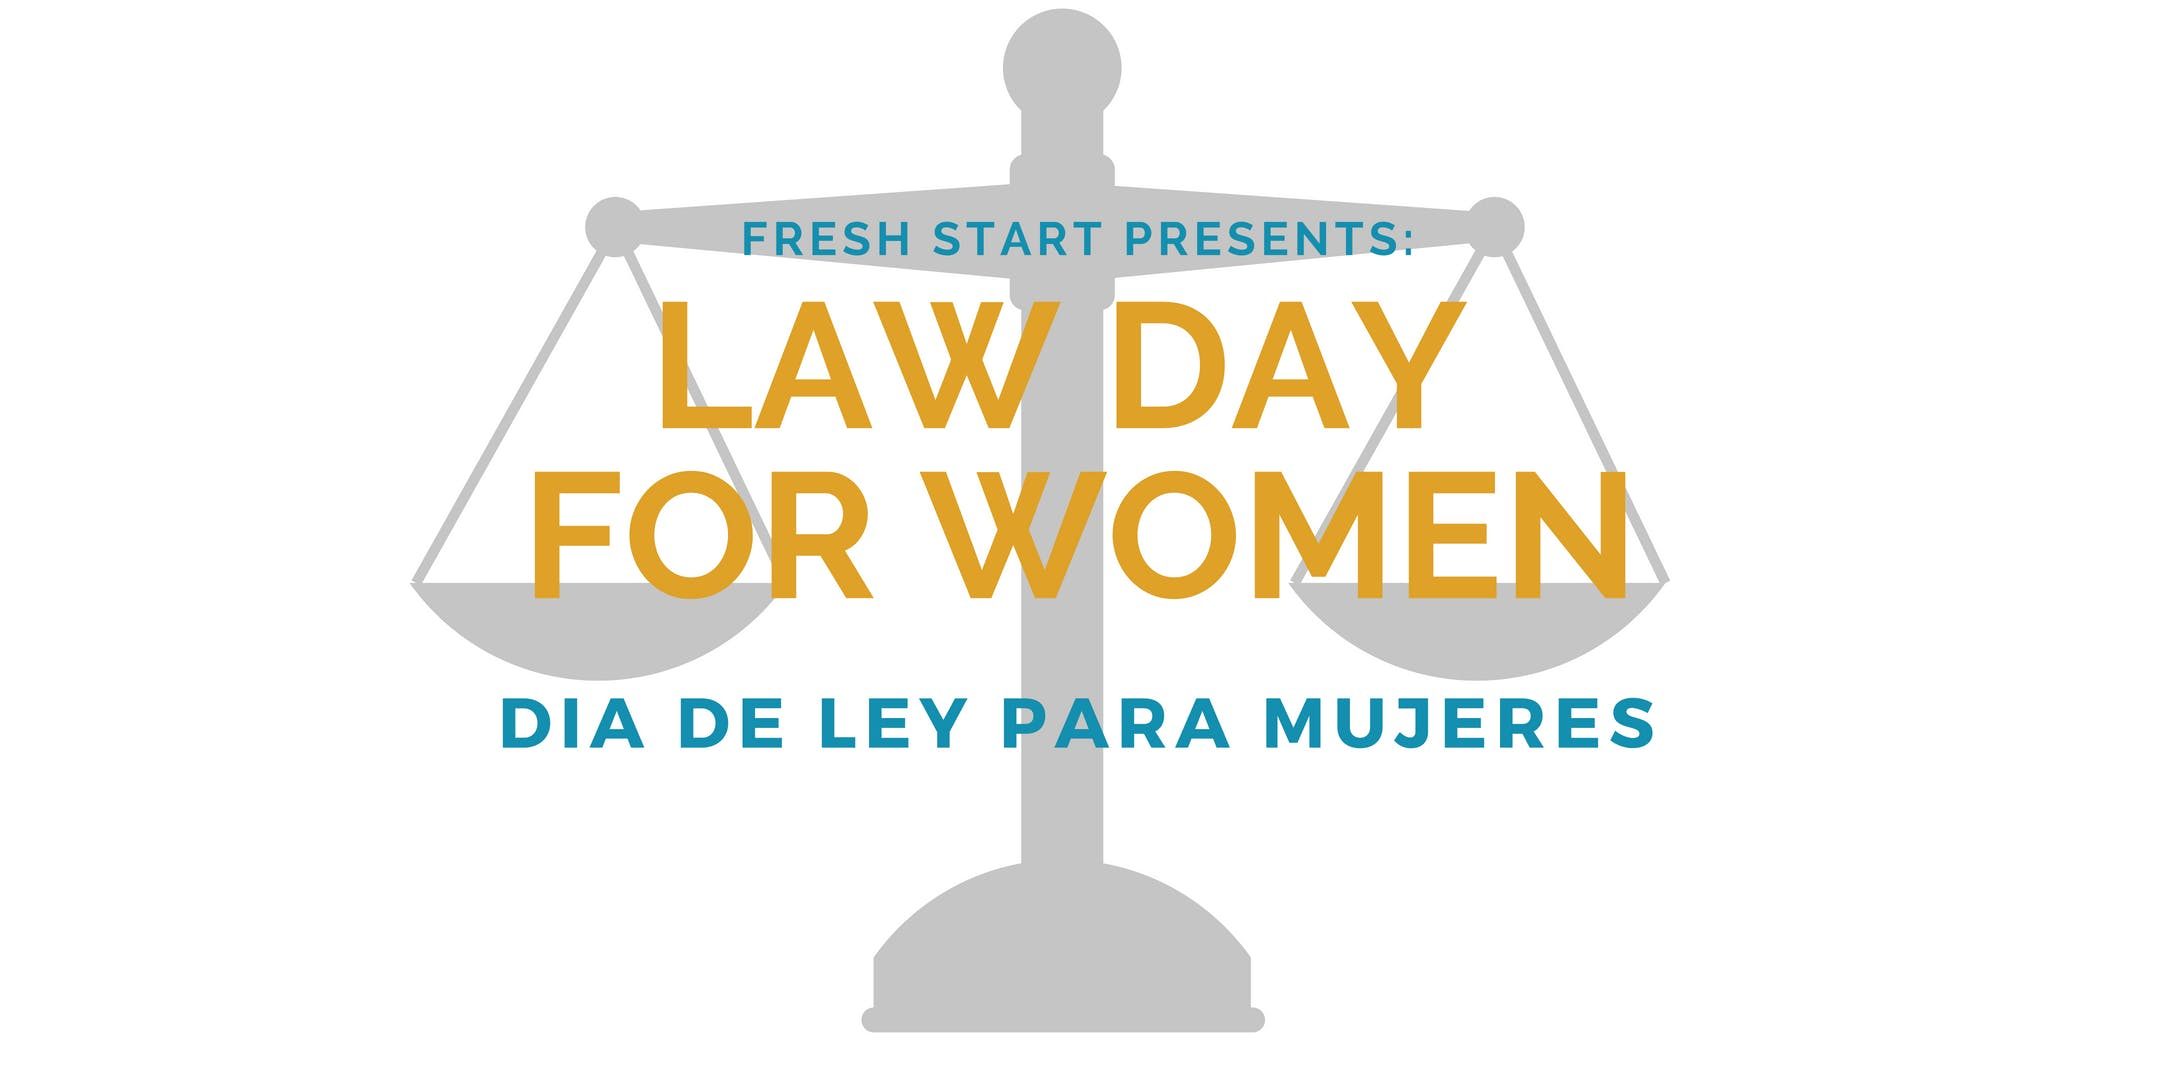 Law Day for Women / Dia De Ley Para Mujeres